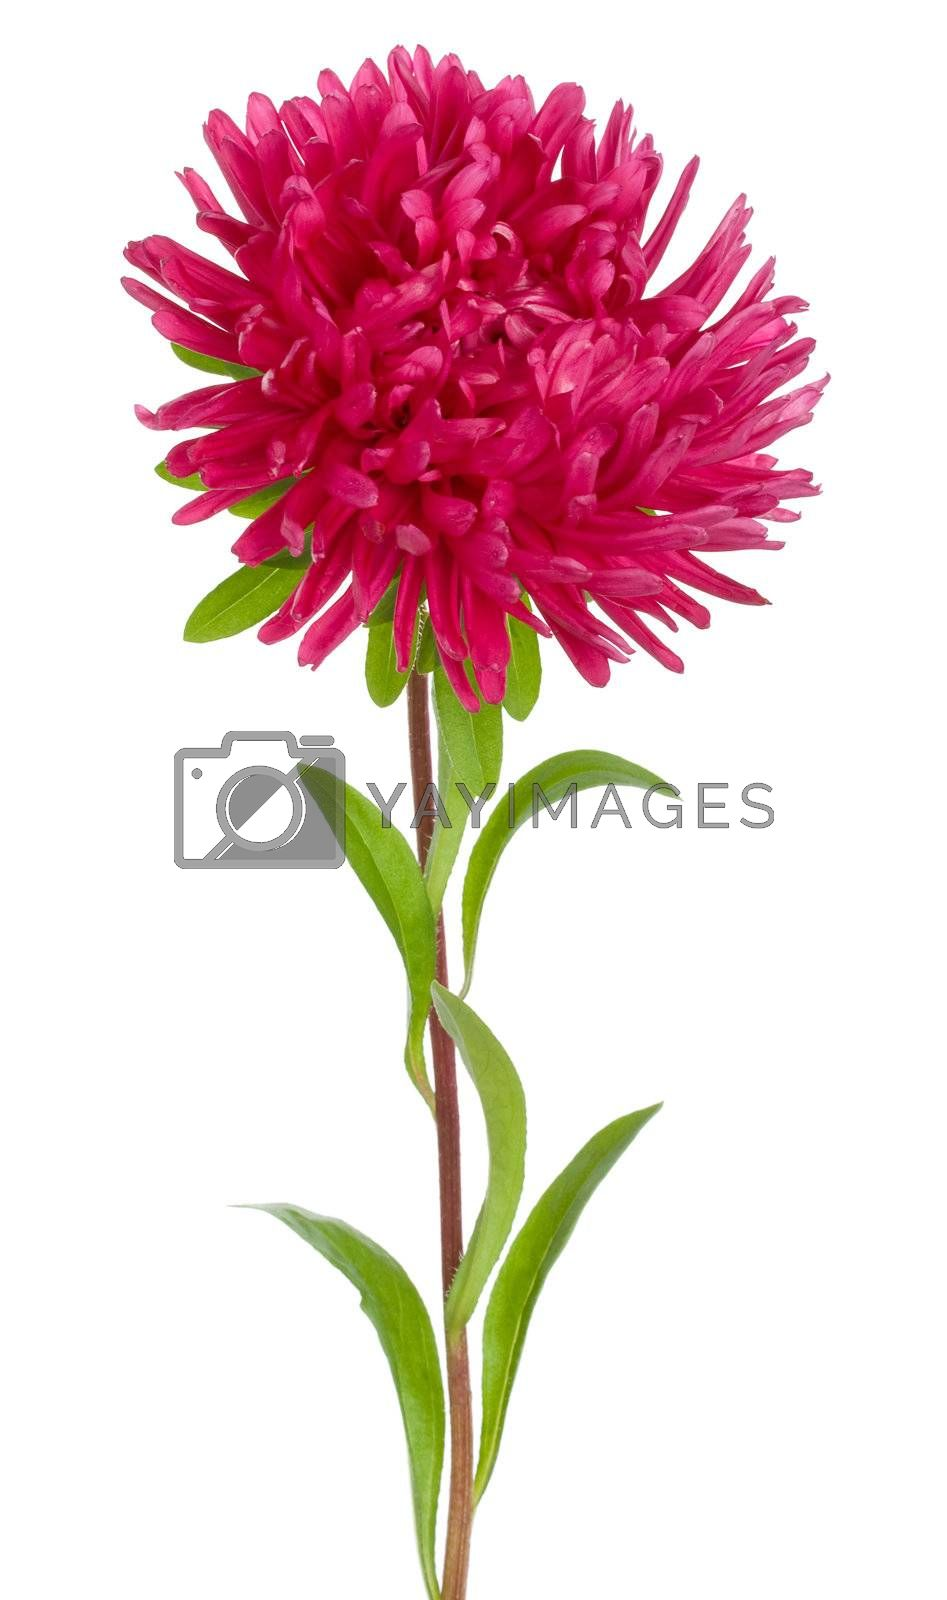 close-up red aster flower, isolated on white